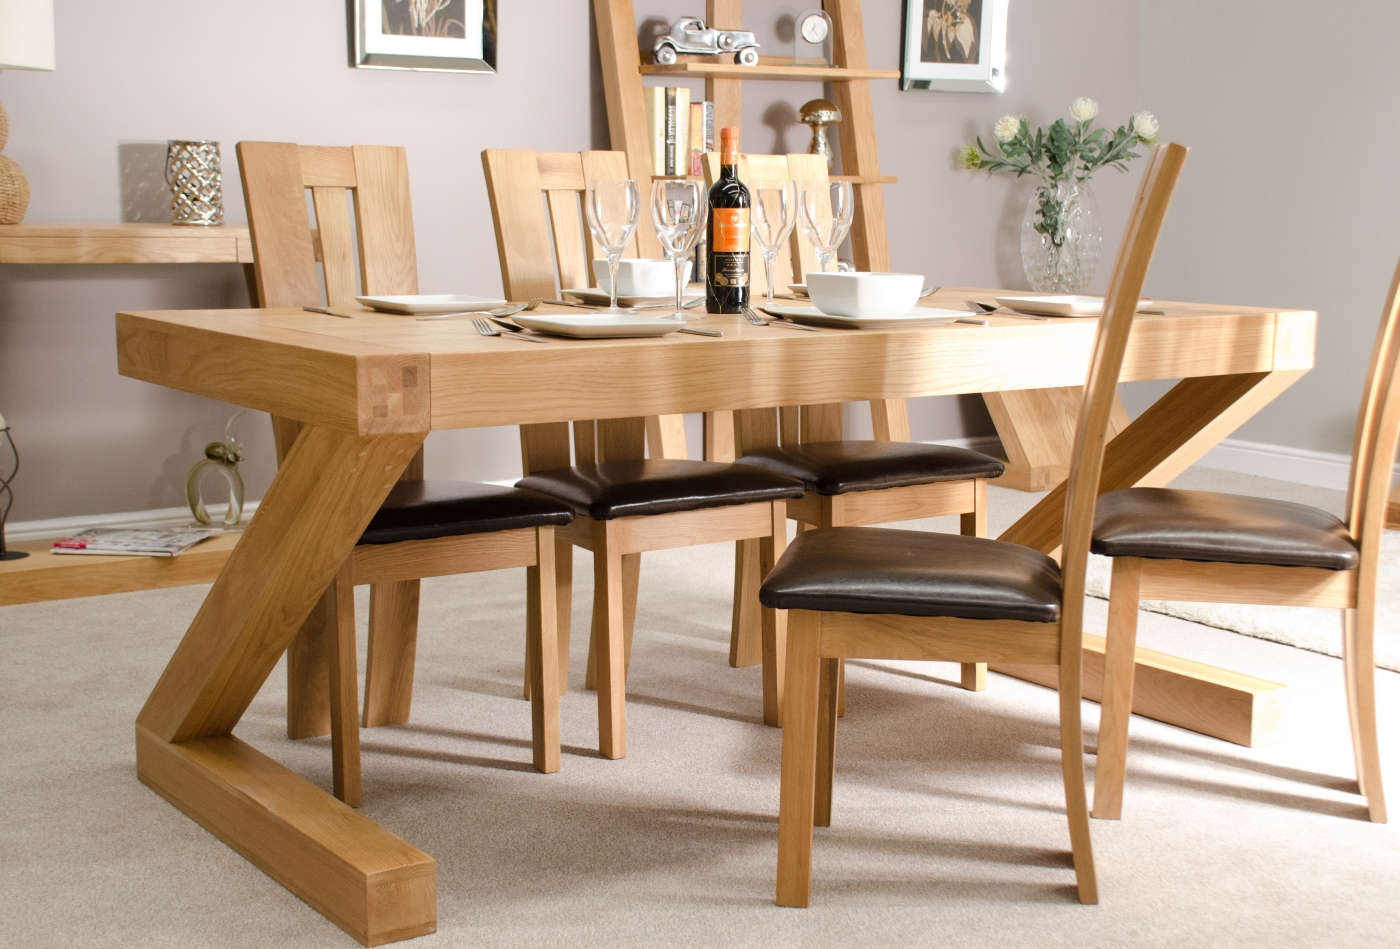 z solid oak designer furniture large chunky dining room